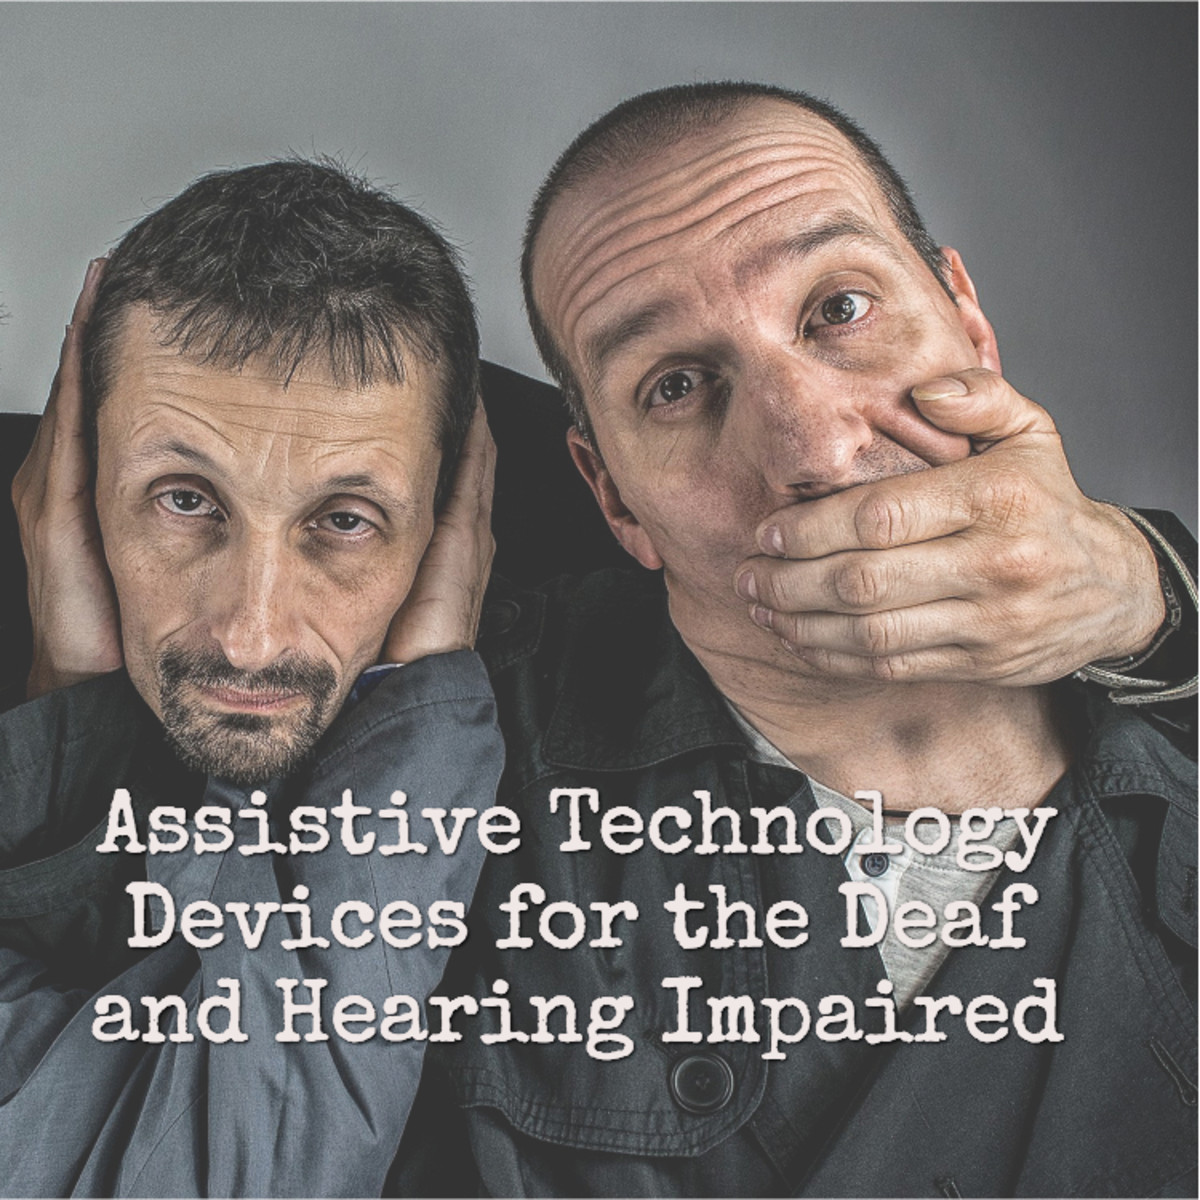 Assistive Technology Devices for the Deaf and Hearing Impaired